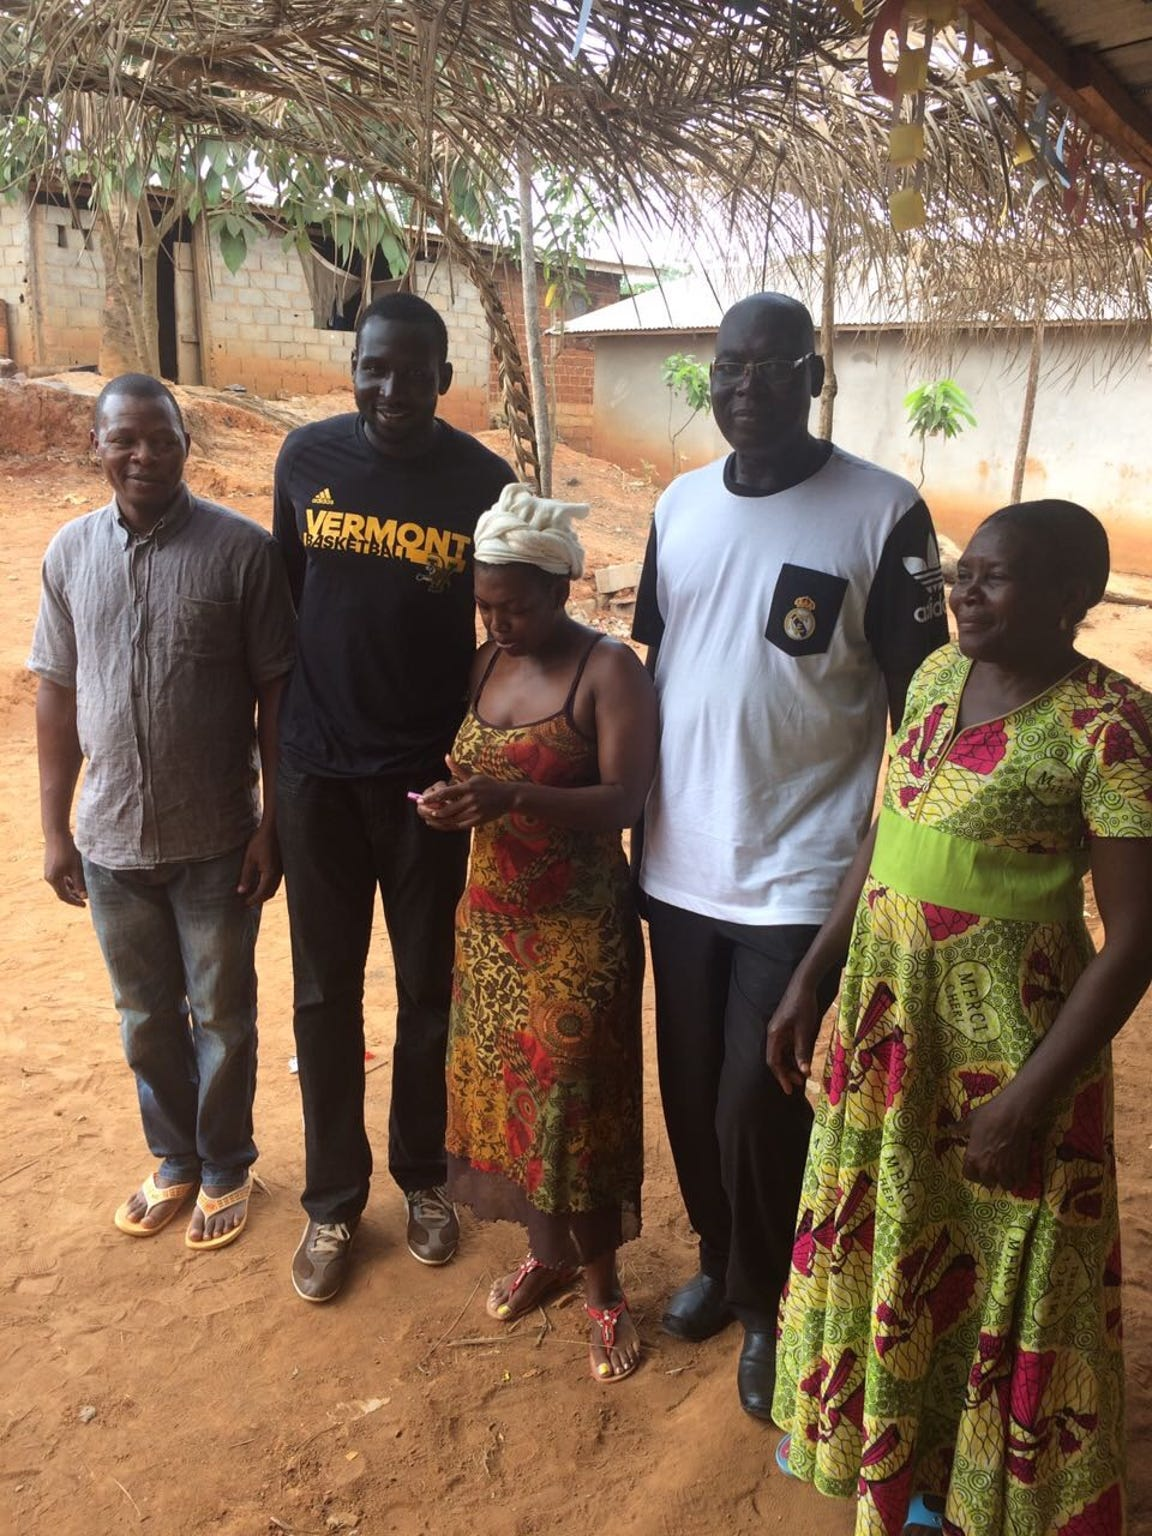 UVM basketball player Sam Dingba, second from left, poses with his father, Andre Tirmo, second from right, and others at an orphanage about  15 miles outside of Yaoundé, Cameroon.